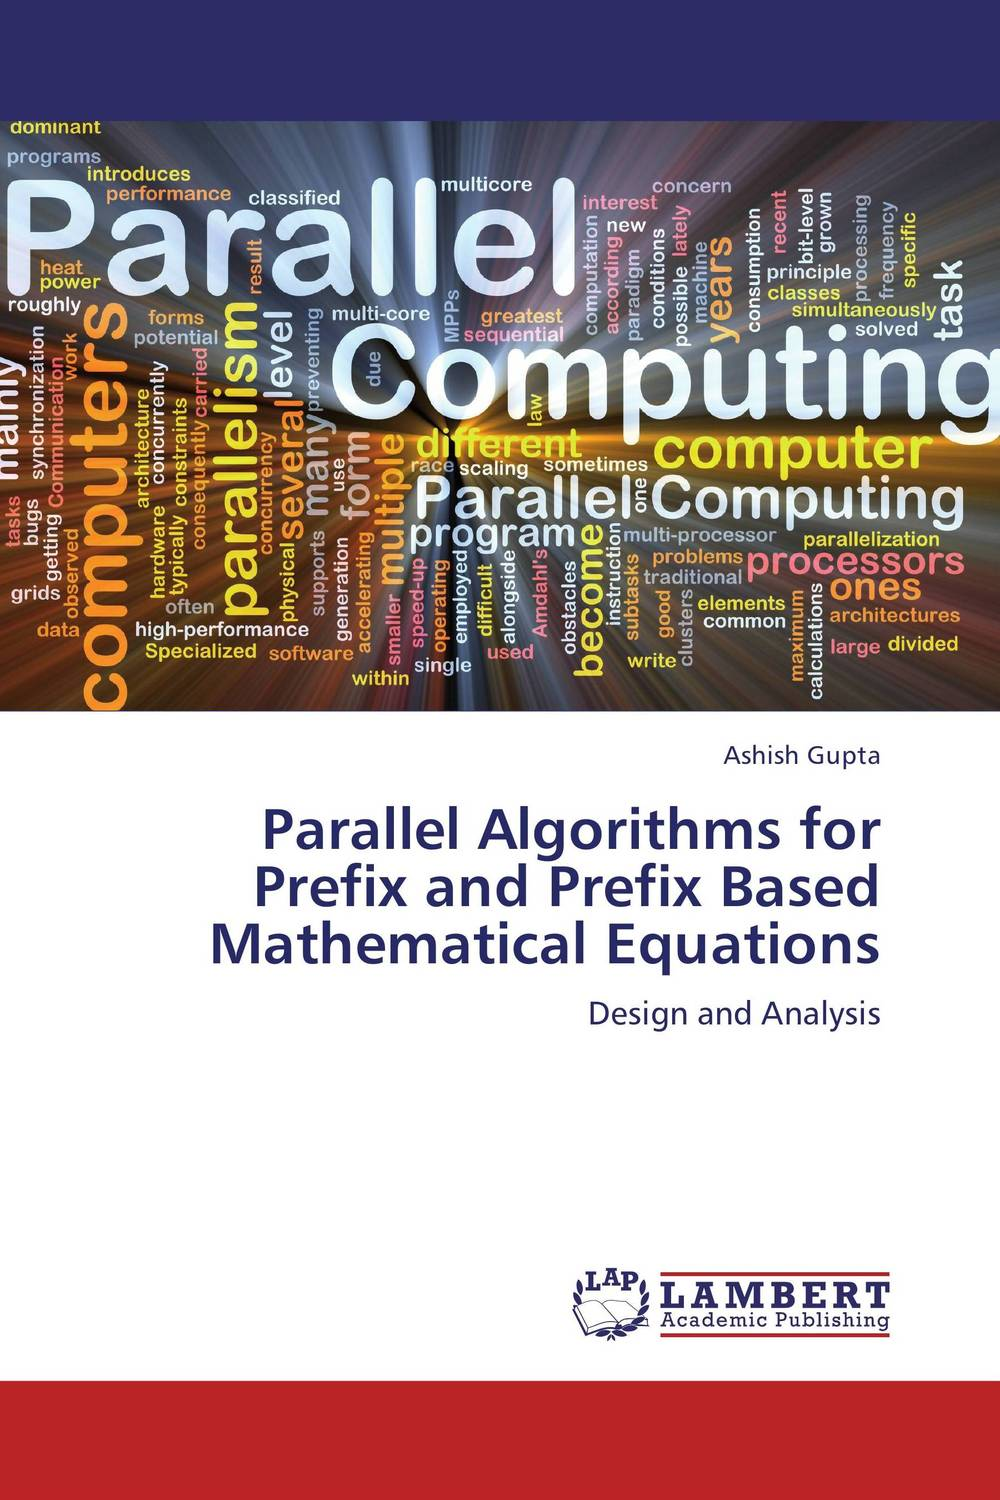 Parallel Algorithms for Prefix and Prefix Based Mathematical Equations mapping of algorithms on parallel architectures